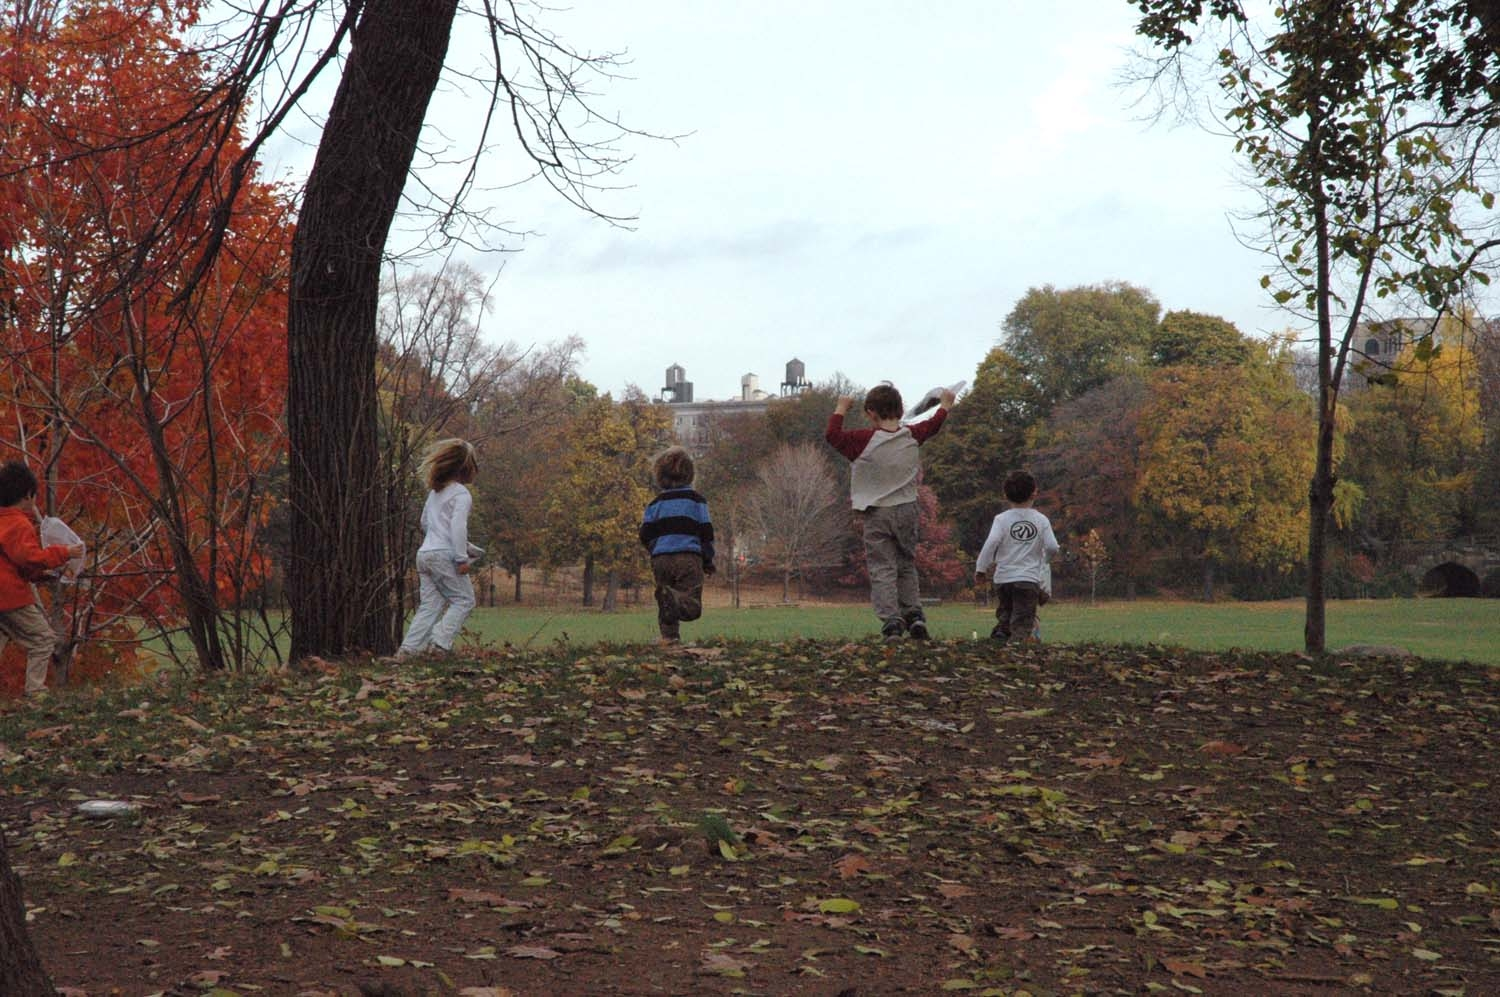 Fun Fall Family Activities in Prospect Park, Brooklyn, NY